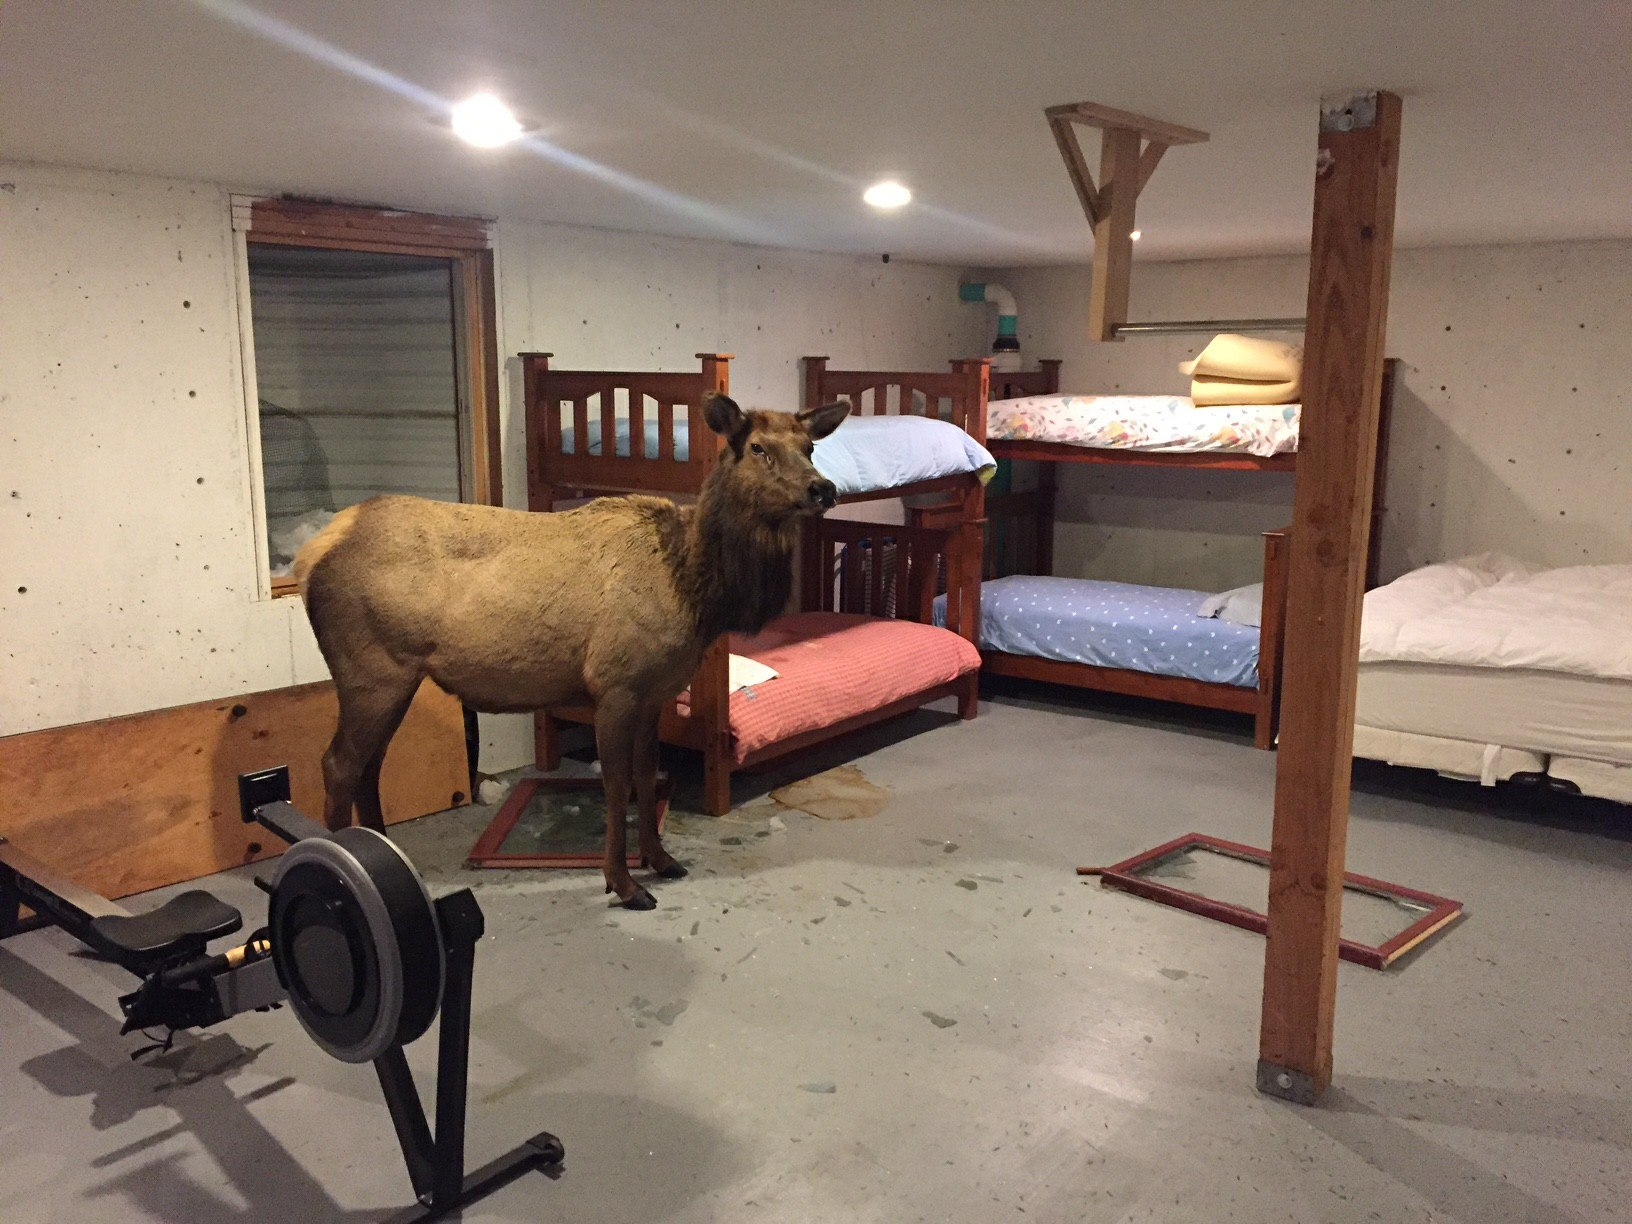 First, a Moose and Now an Elk Has Fallen into an Idaho Residential Basement